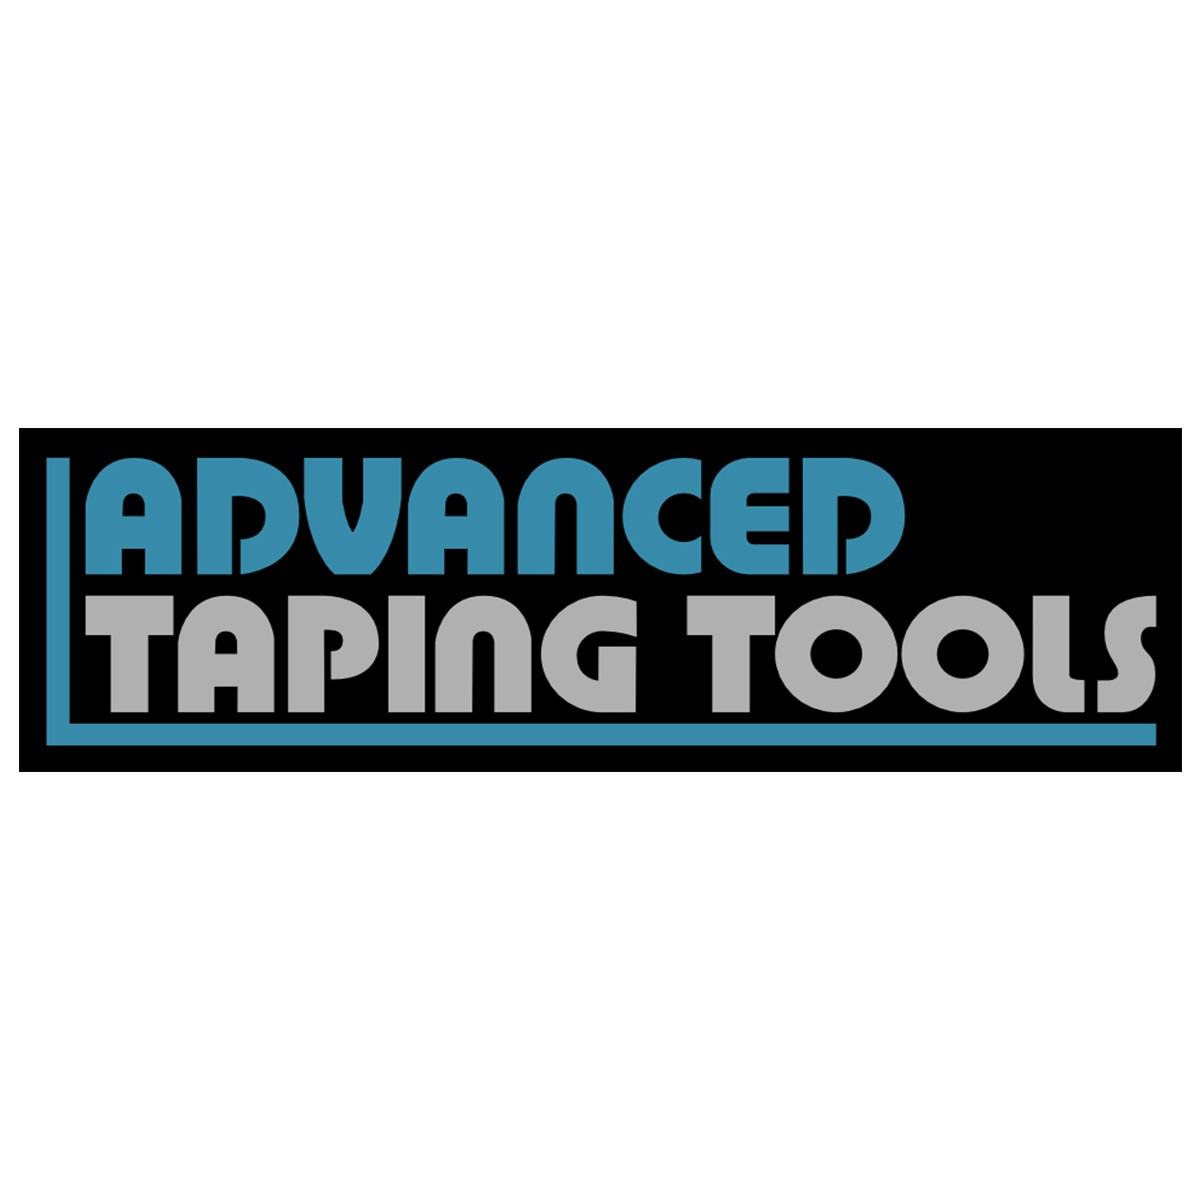 Advanced Taping Tools